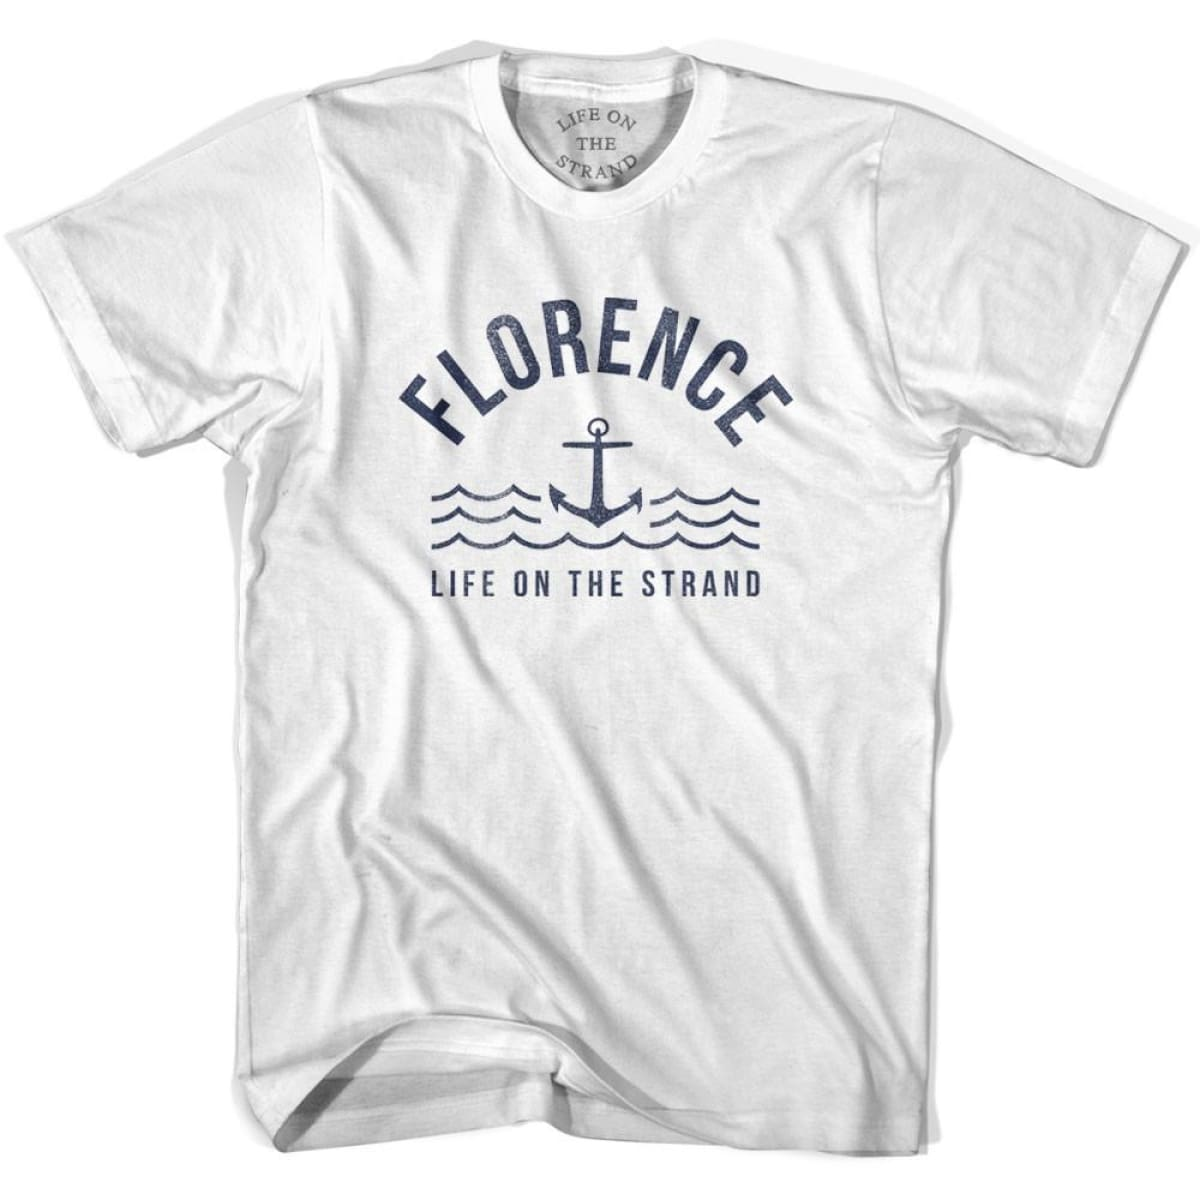 Florence Anchor Life on the Strand T-shirt - White / Youth X-Small - Life on the Strand Anchor